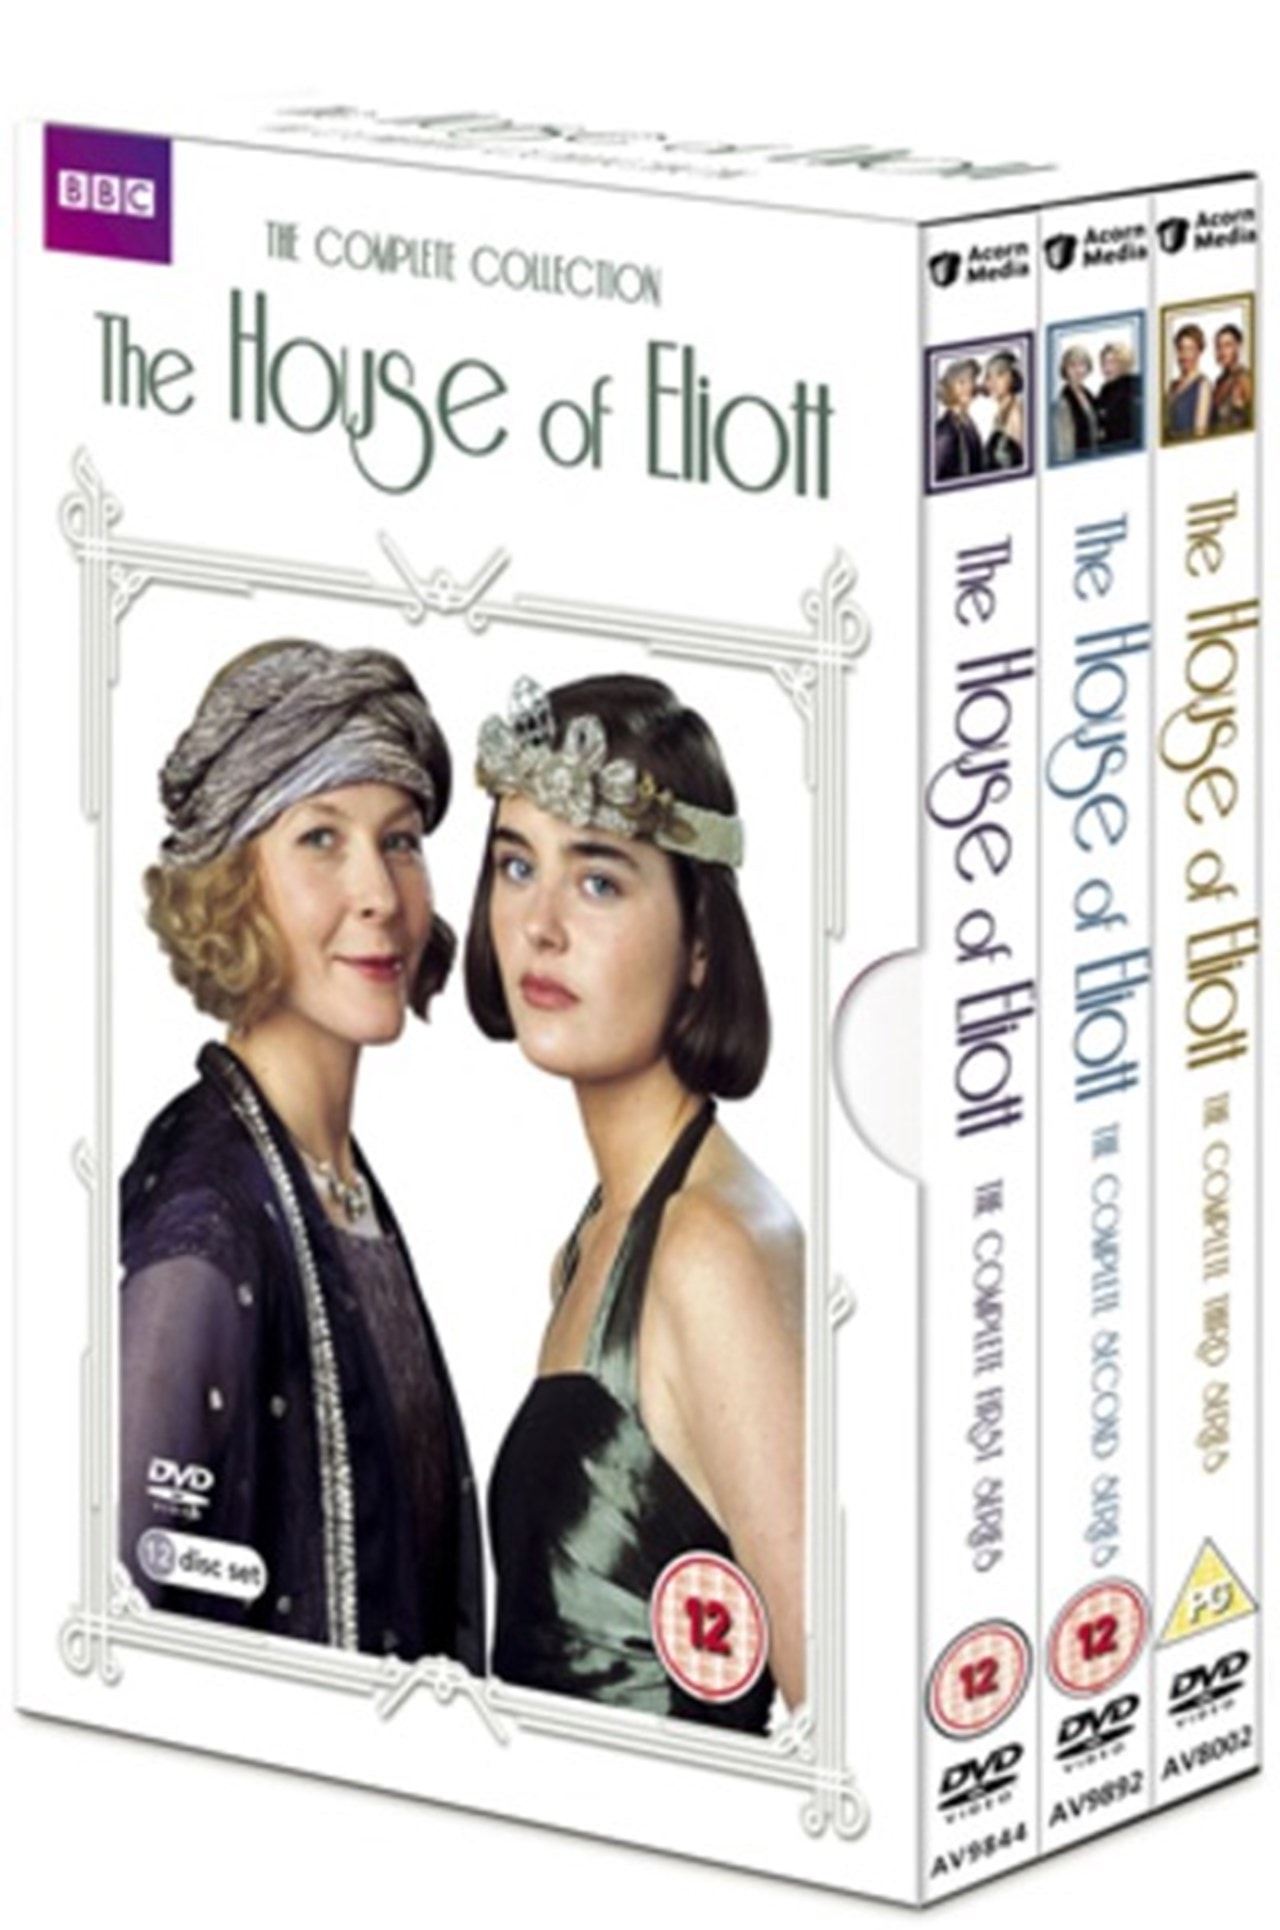 The House Of Eliott Complete Collection Dvd Box Set Free Shipping Over 20 Hmv Store